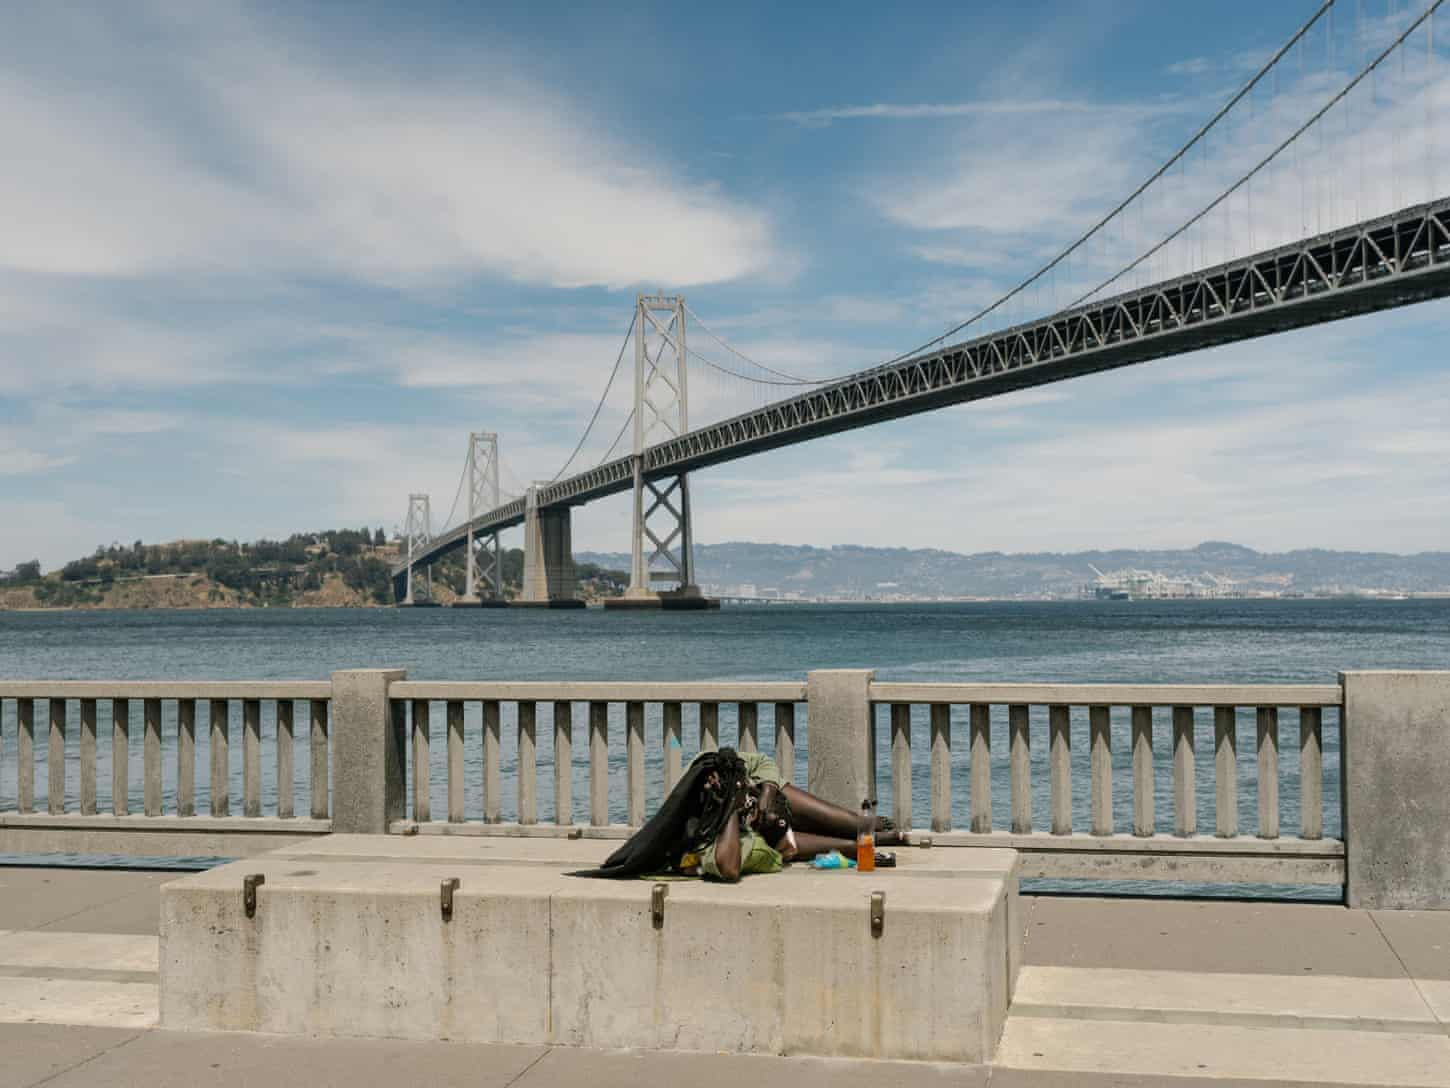 'We all suffer': why San Francisco techies hate the city they transformed